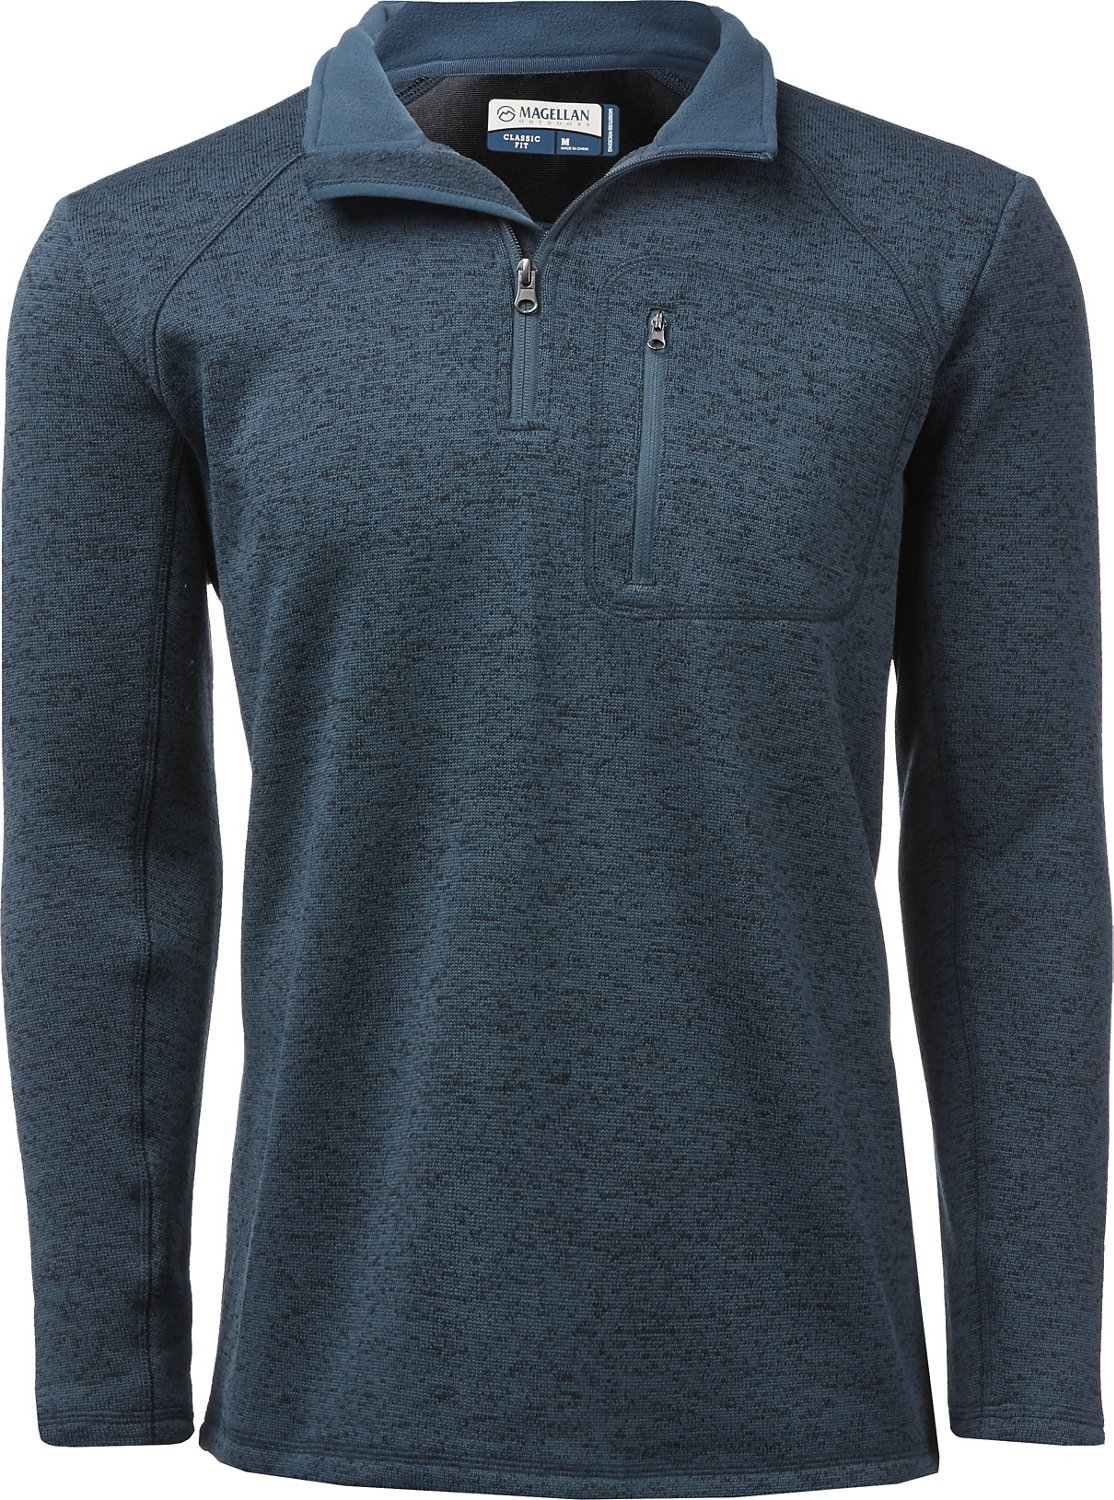 6ca71e4be Display product reviews for Magellan Outdoors Men's Hickory Canyon 1/4 Zip  Pullover